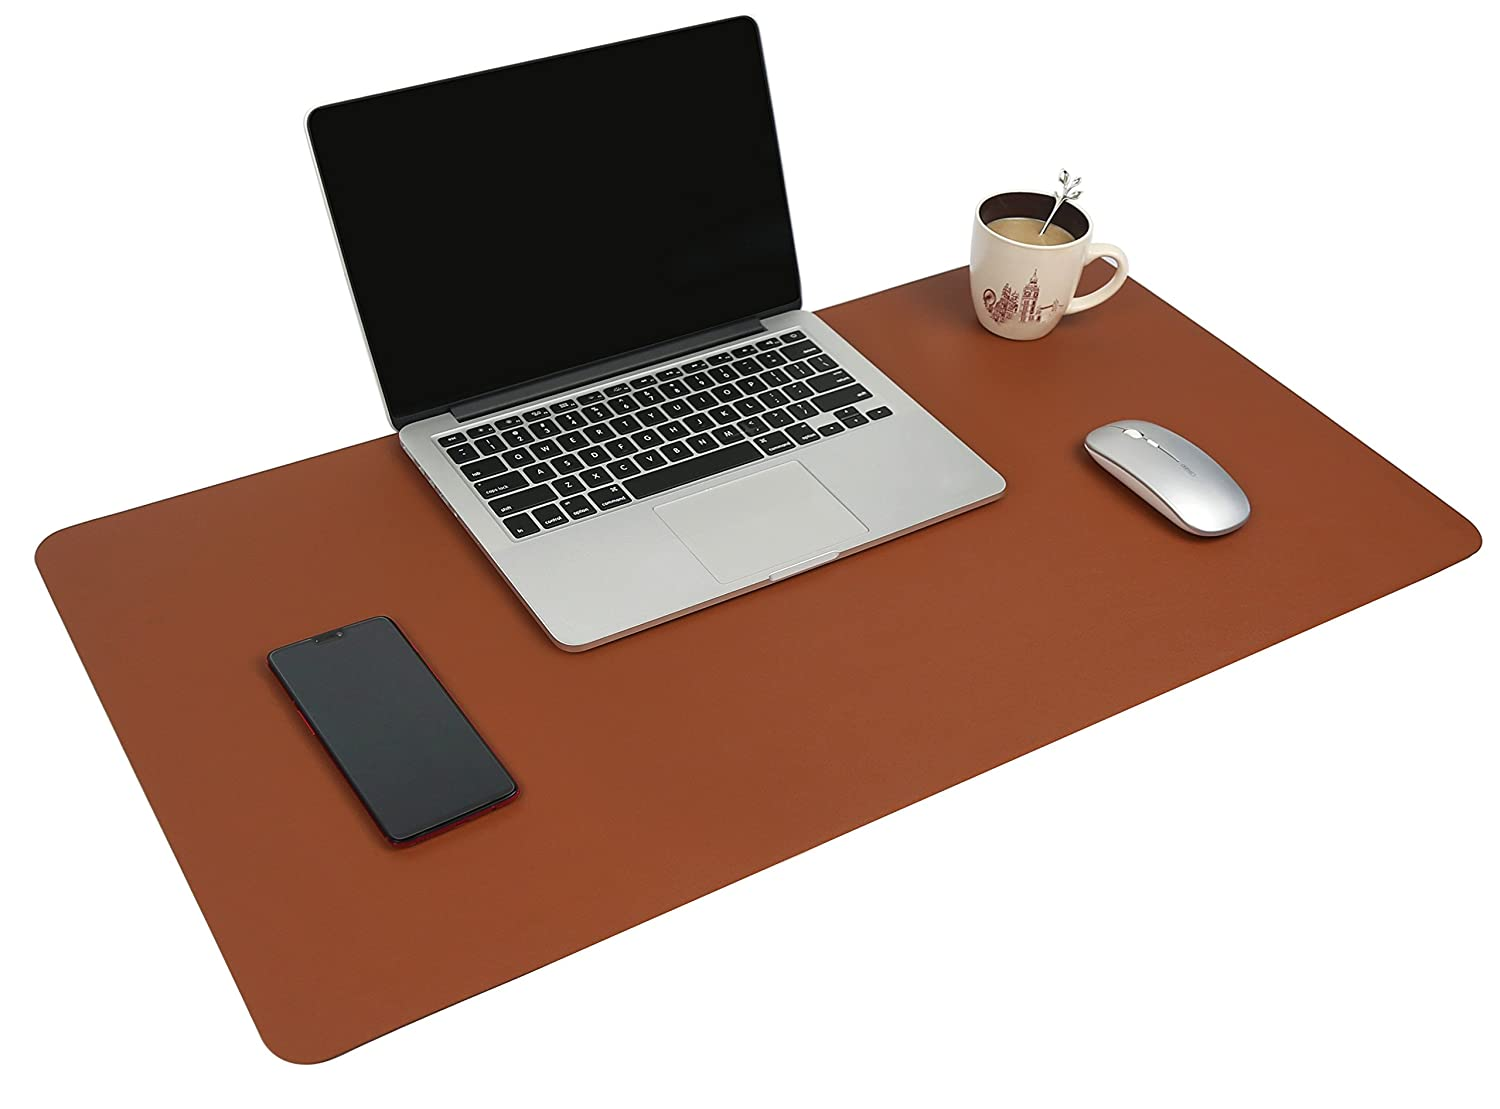 Multifunctional Office Desk Pad, 31.5 x 15.7 YSAGi Ultra Thin Waterproof PU Leather Mouse Pad, Dual Use Desk Writing Mat for Office/Home (31.5 x 15.7, Black)